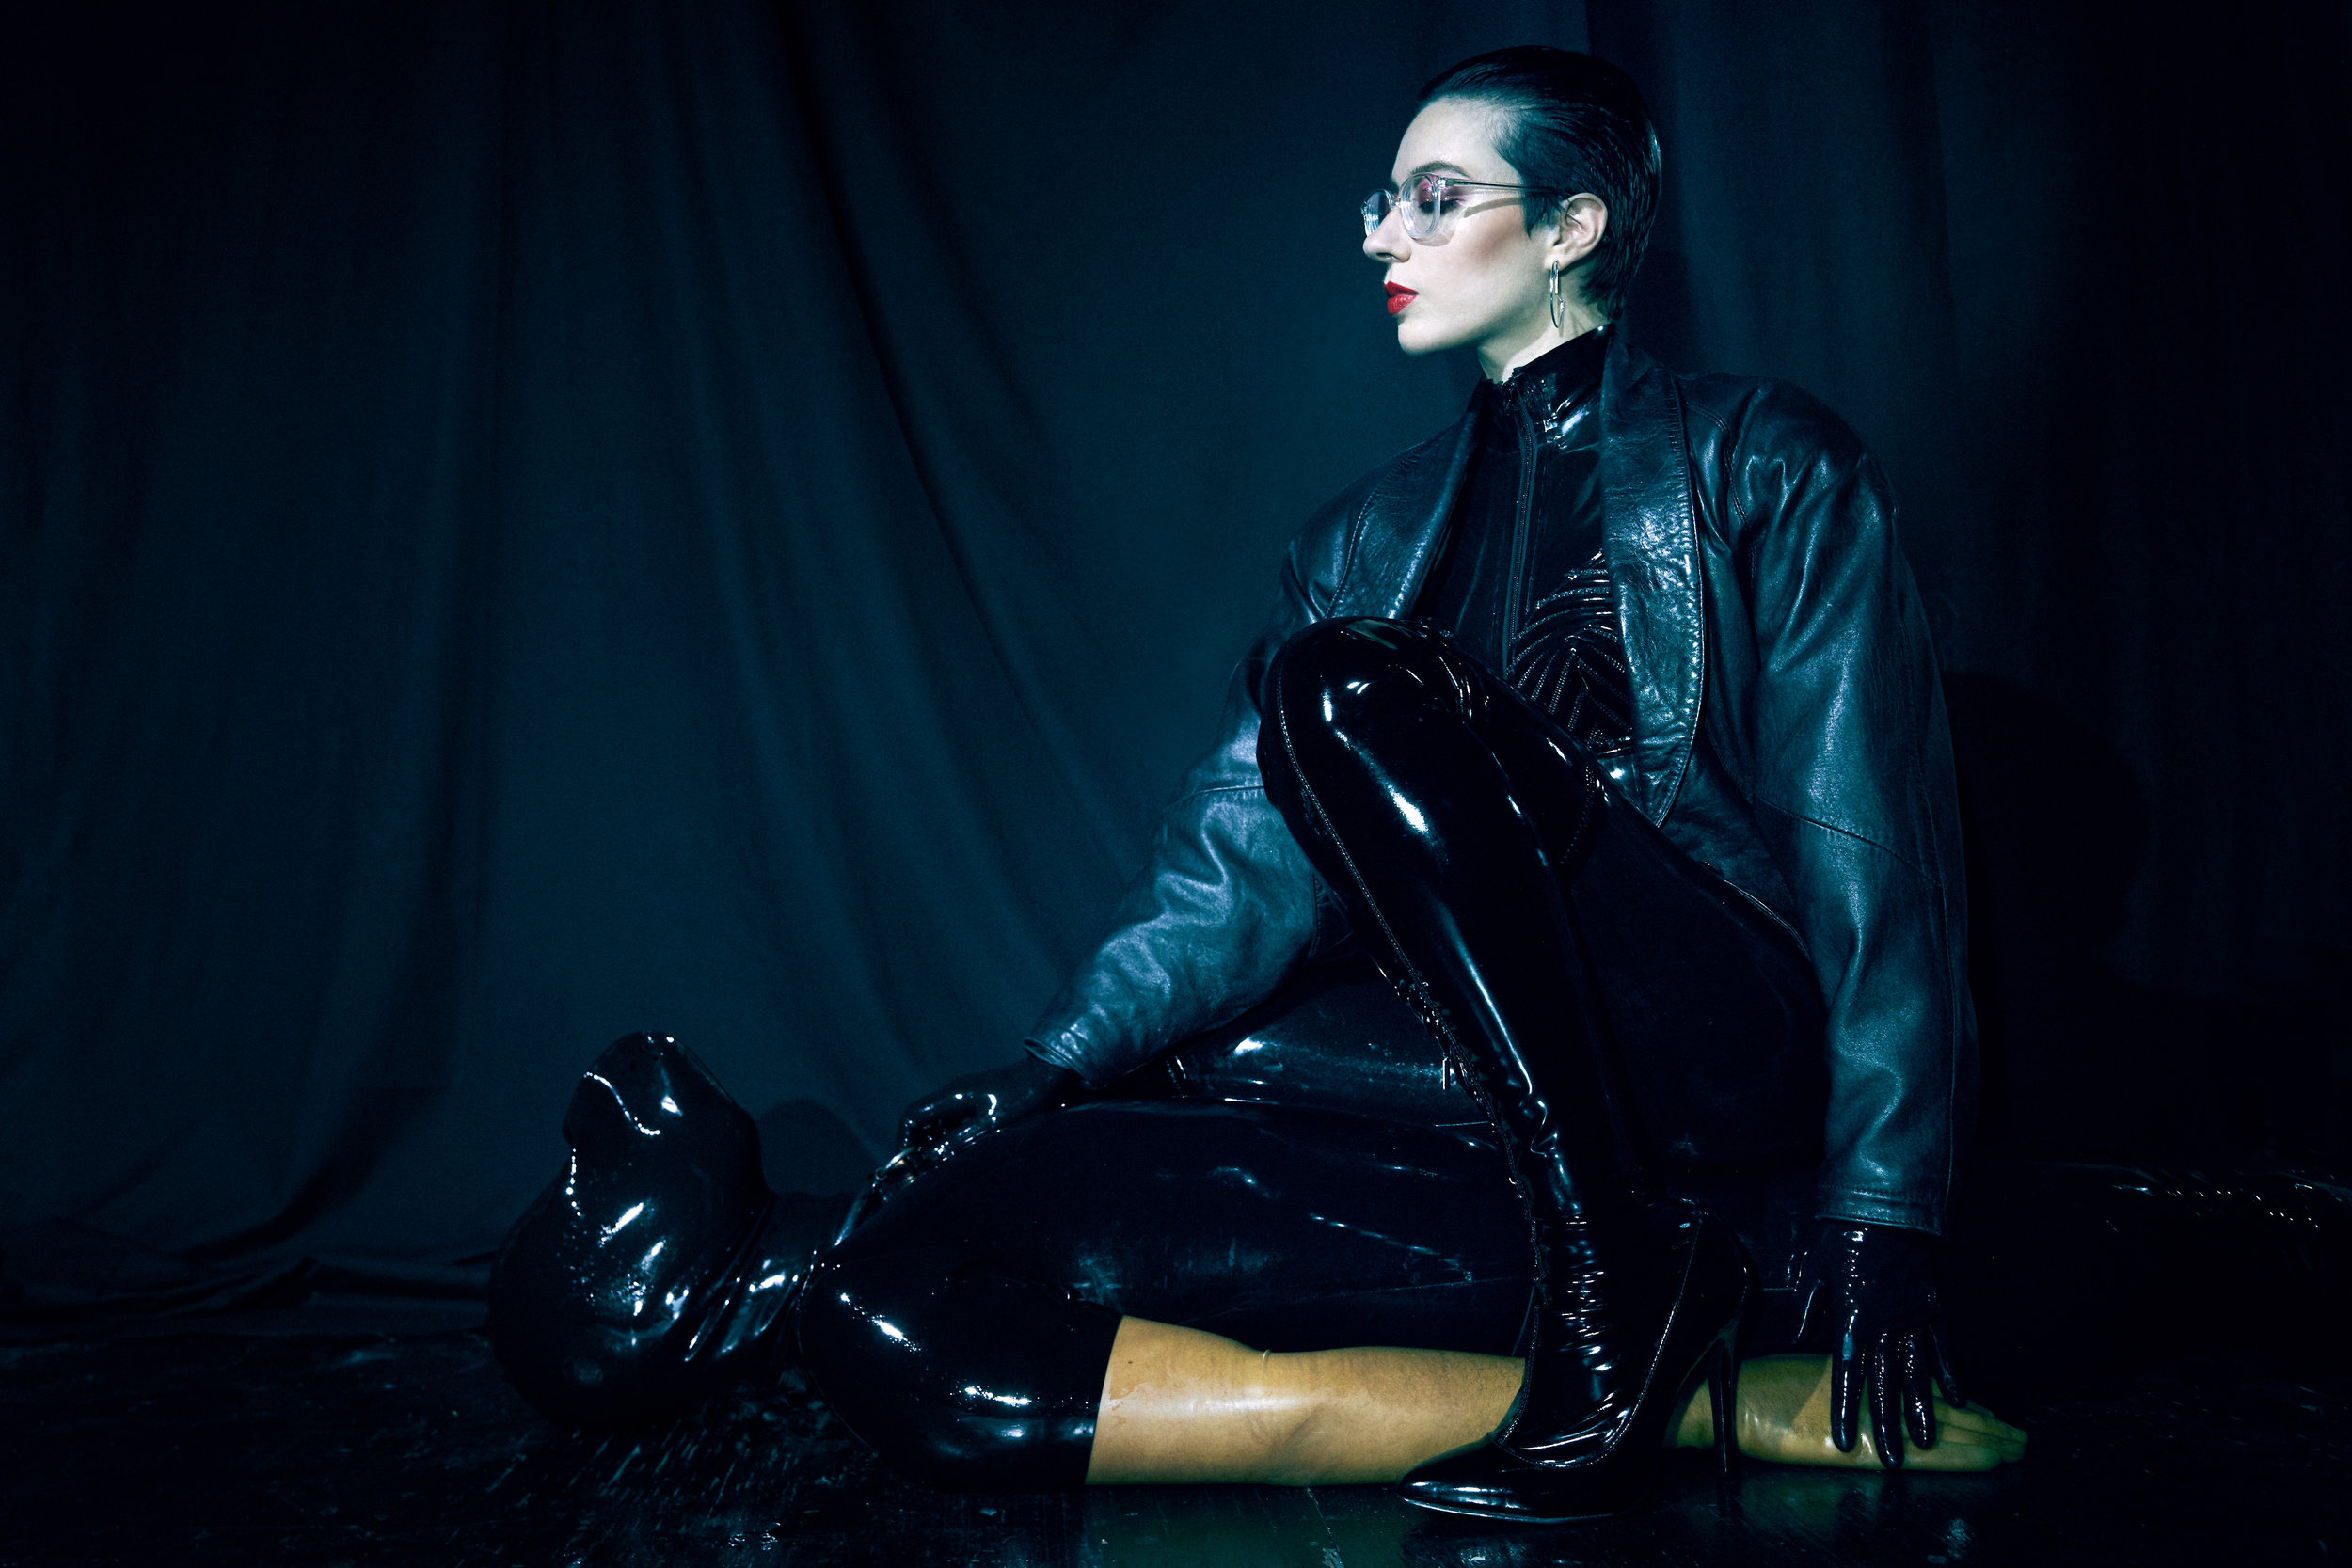 mistrix-sade-nyc-bdsm-mistress-dominatrix-latex-prodomme.jpg